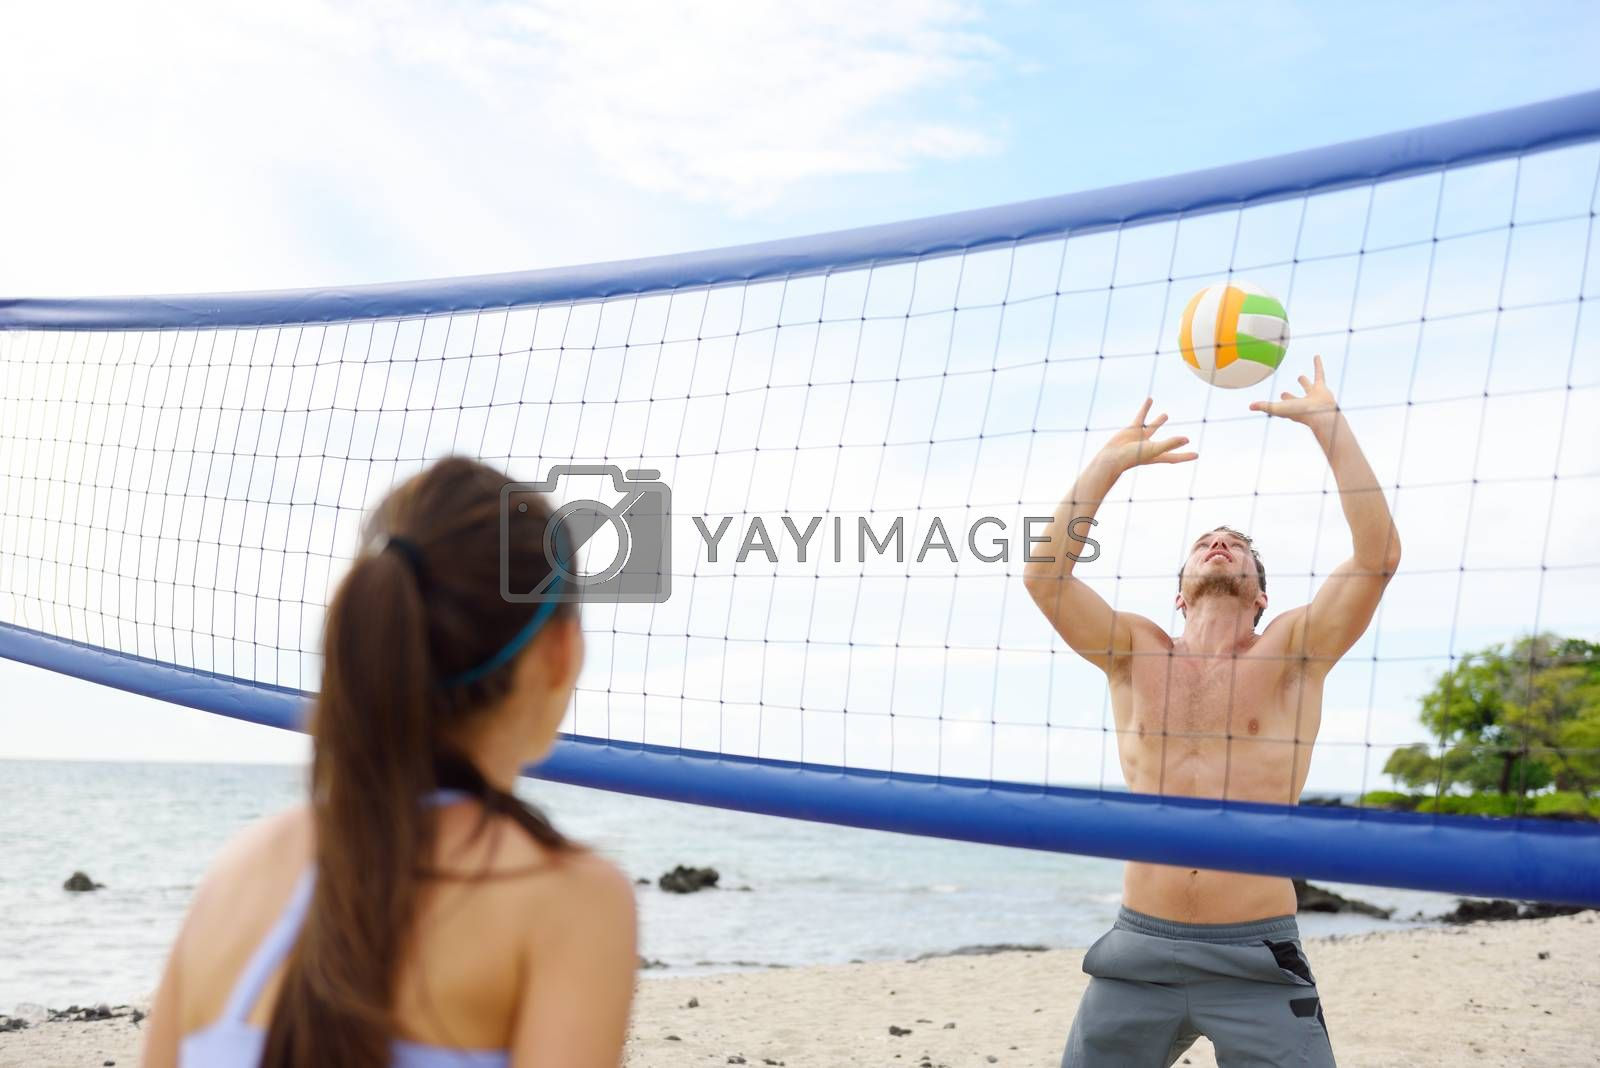 People playing beach volleyball having fun in sporty active lifestyle. Man hitting volley ball in game in summer. Woman and man fitness model living healthy lifestyle doing sport on beach.